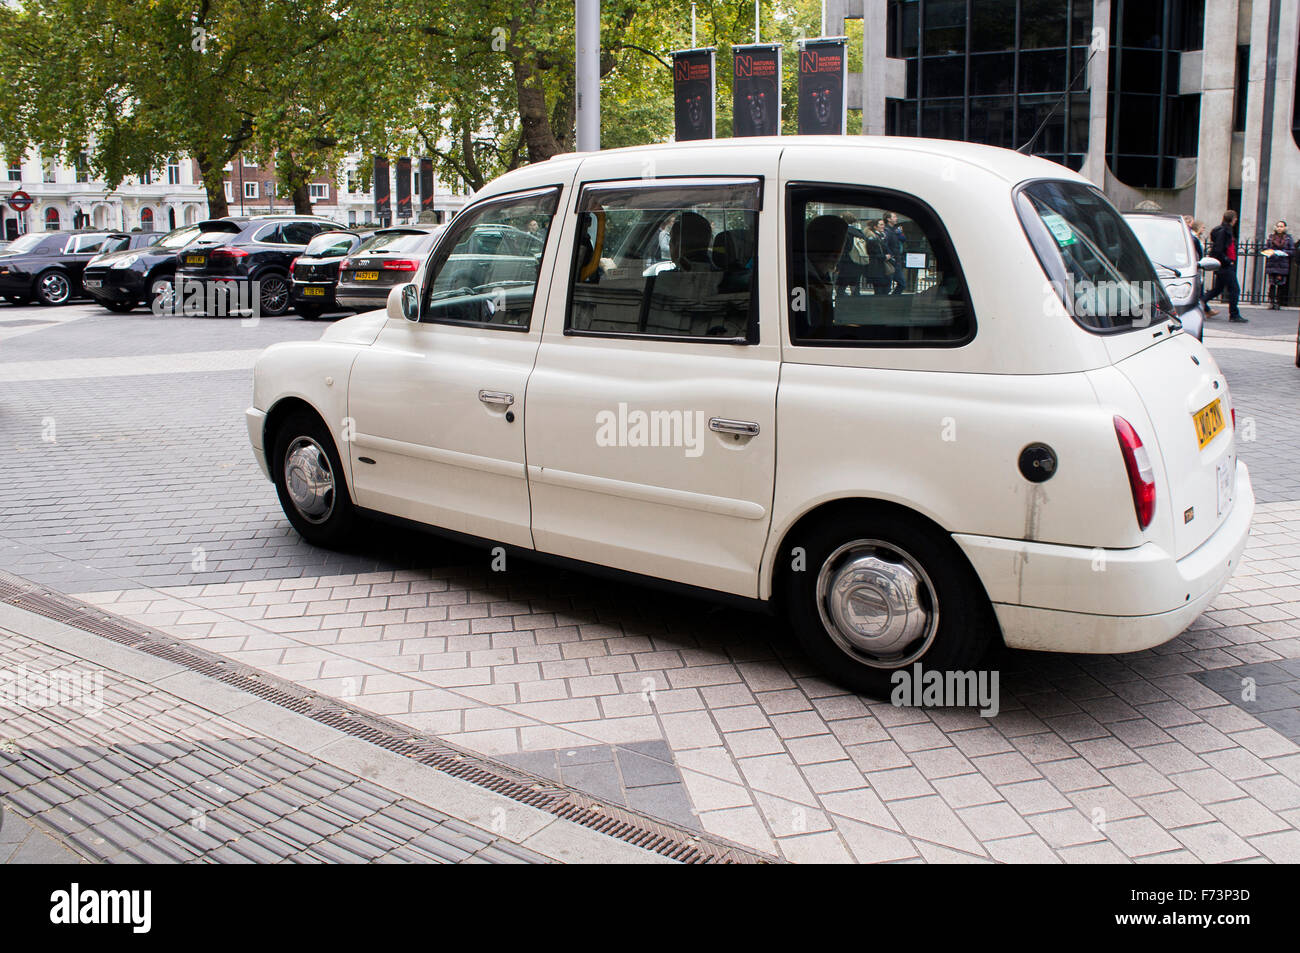 London taxi, hackney carriage, white cab, hack - Stock Image